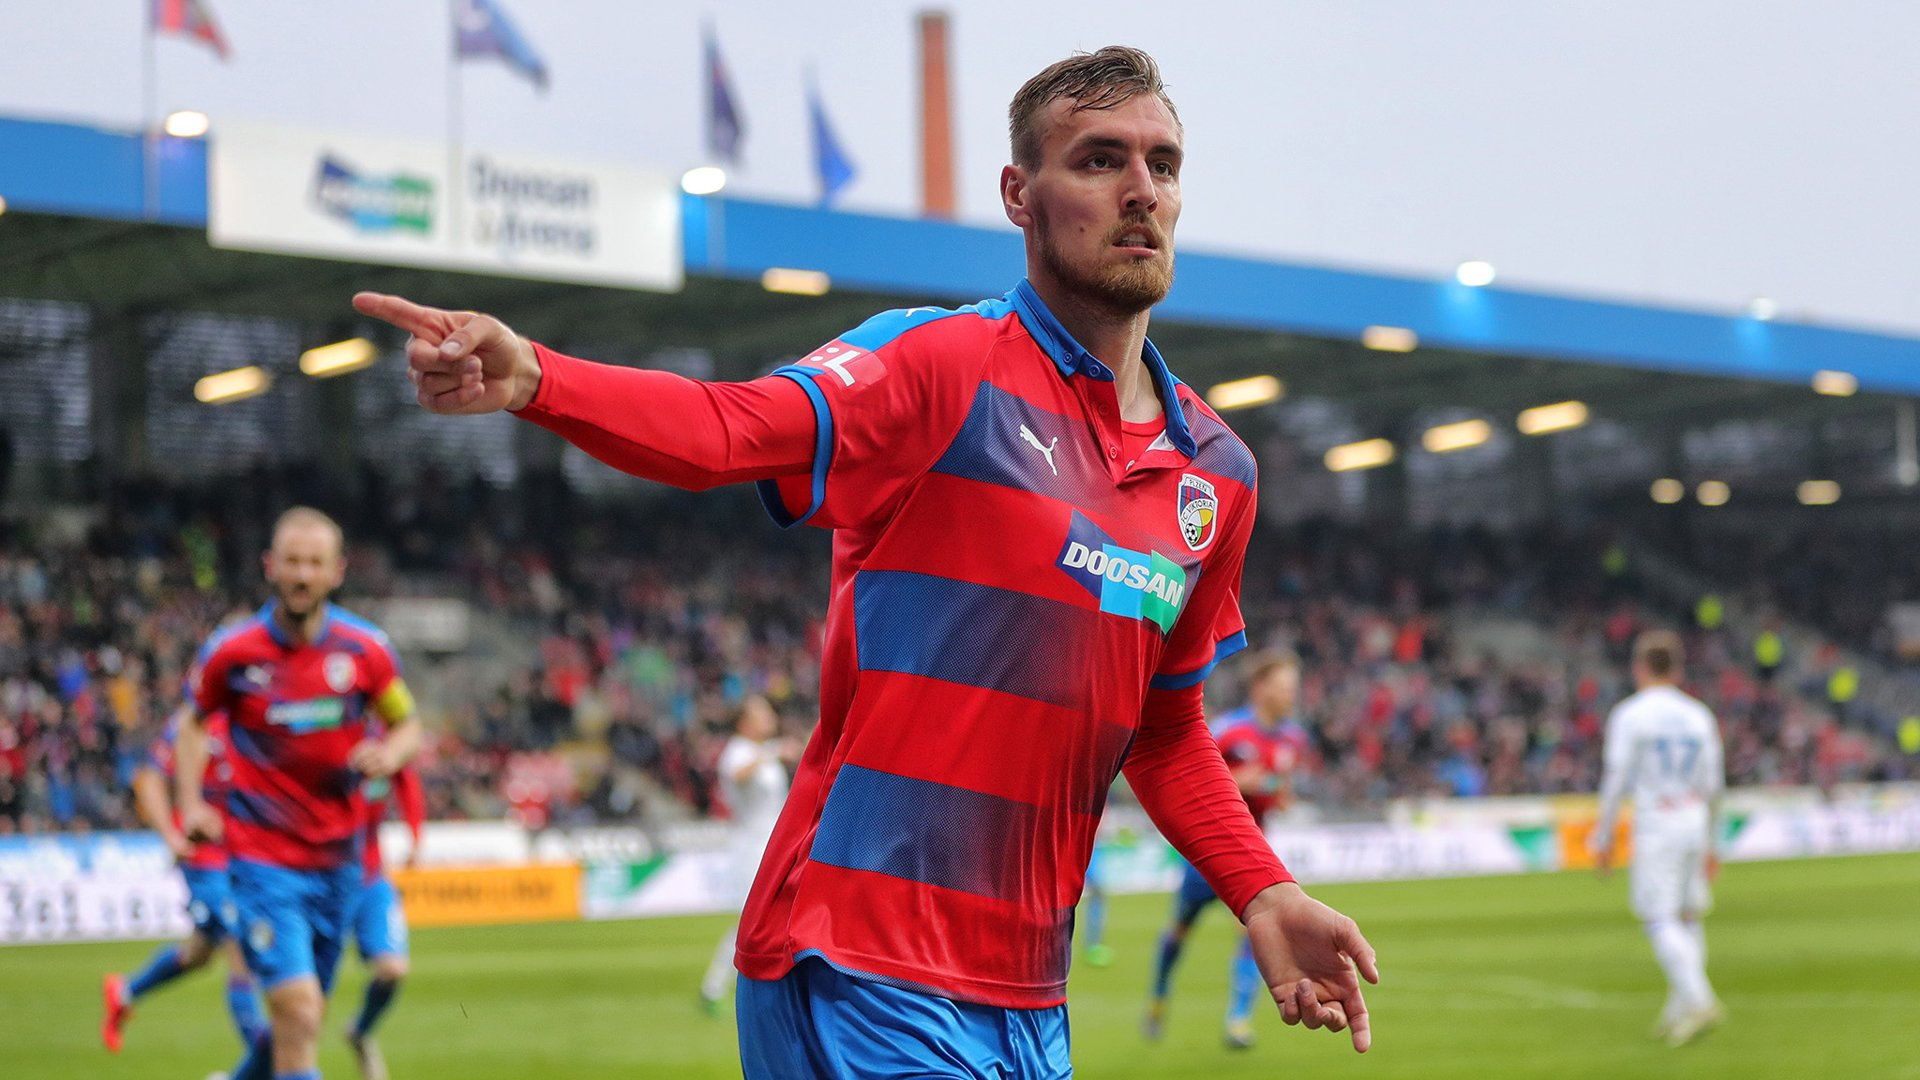 Chorý and Beauguel turn the match with Baník around, Plzeň takes victory